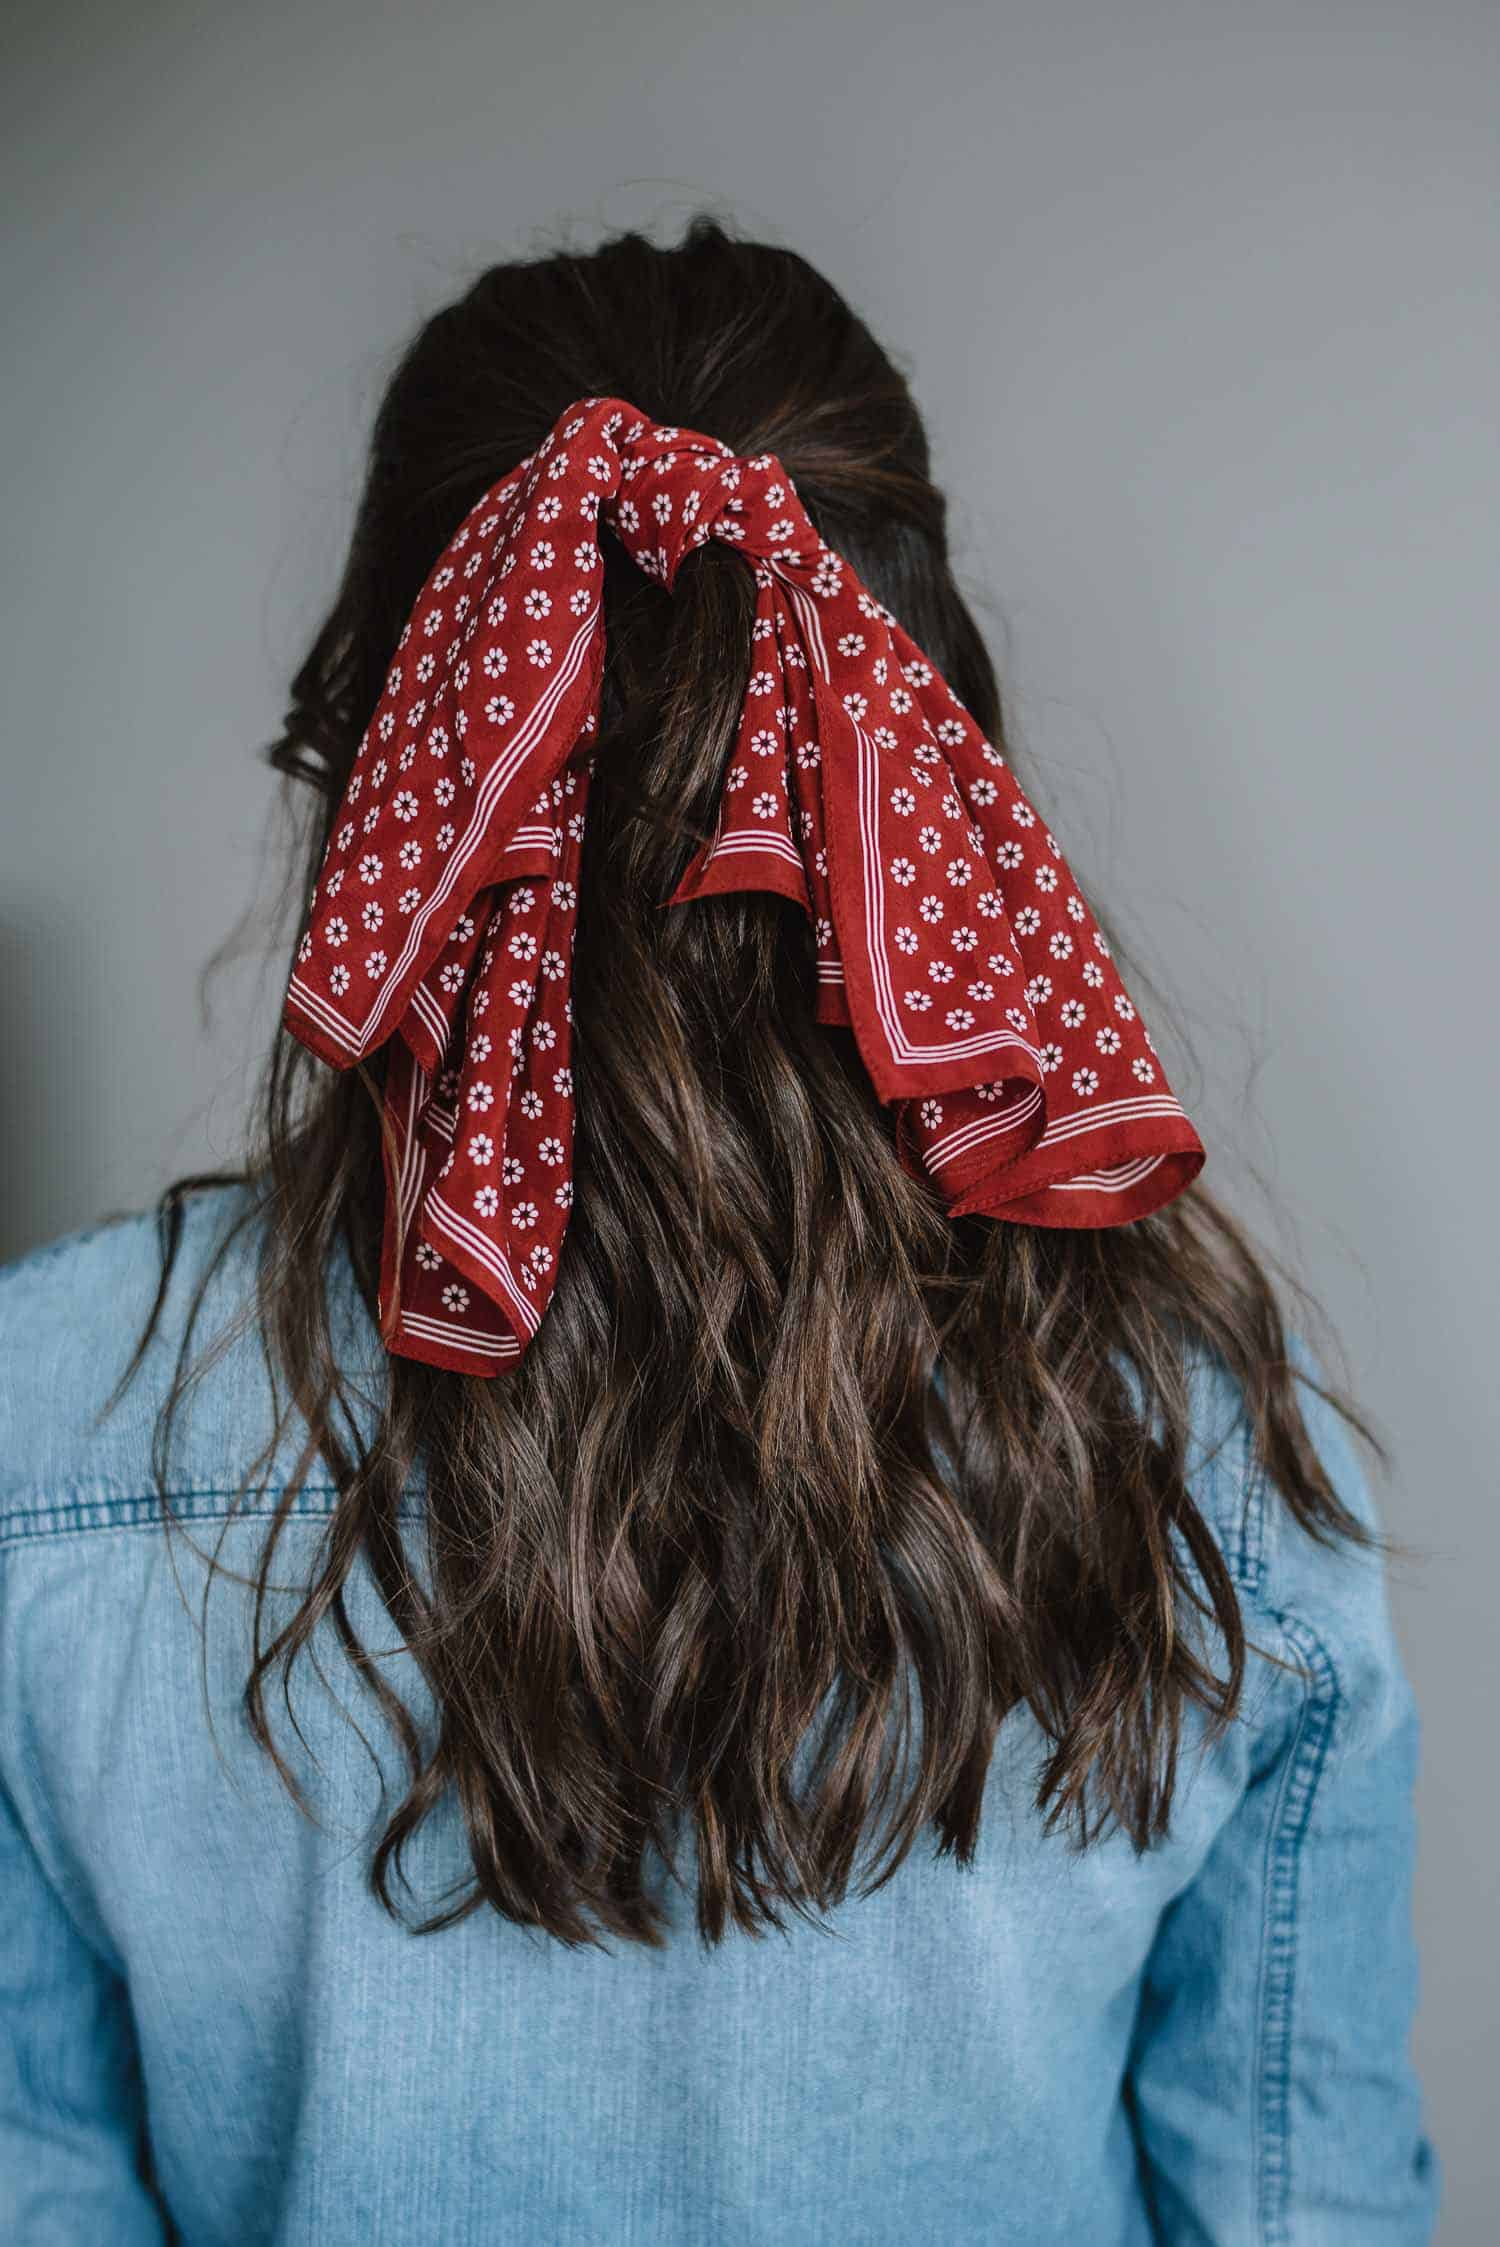 How To Wear A Bandana In Your Hair - The Half Ponytail